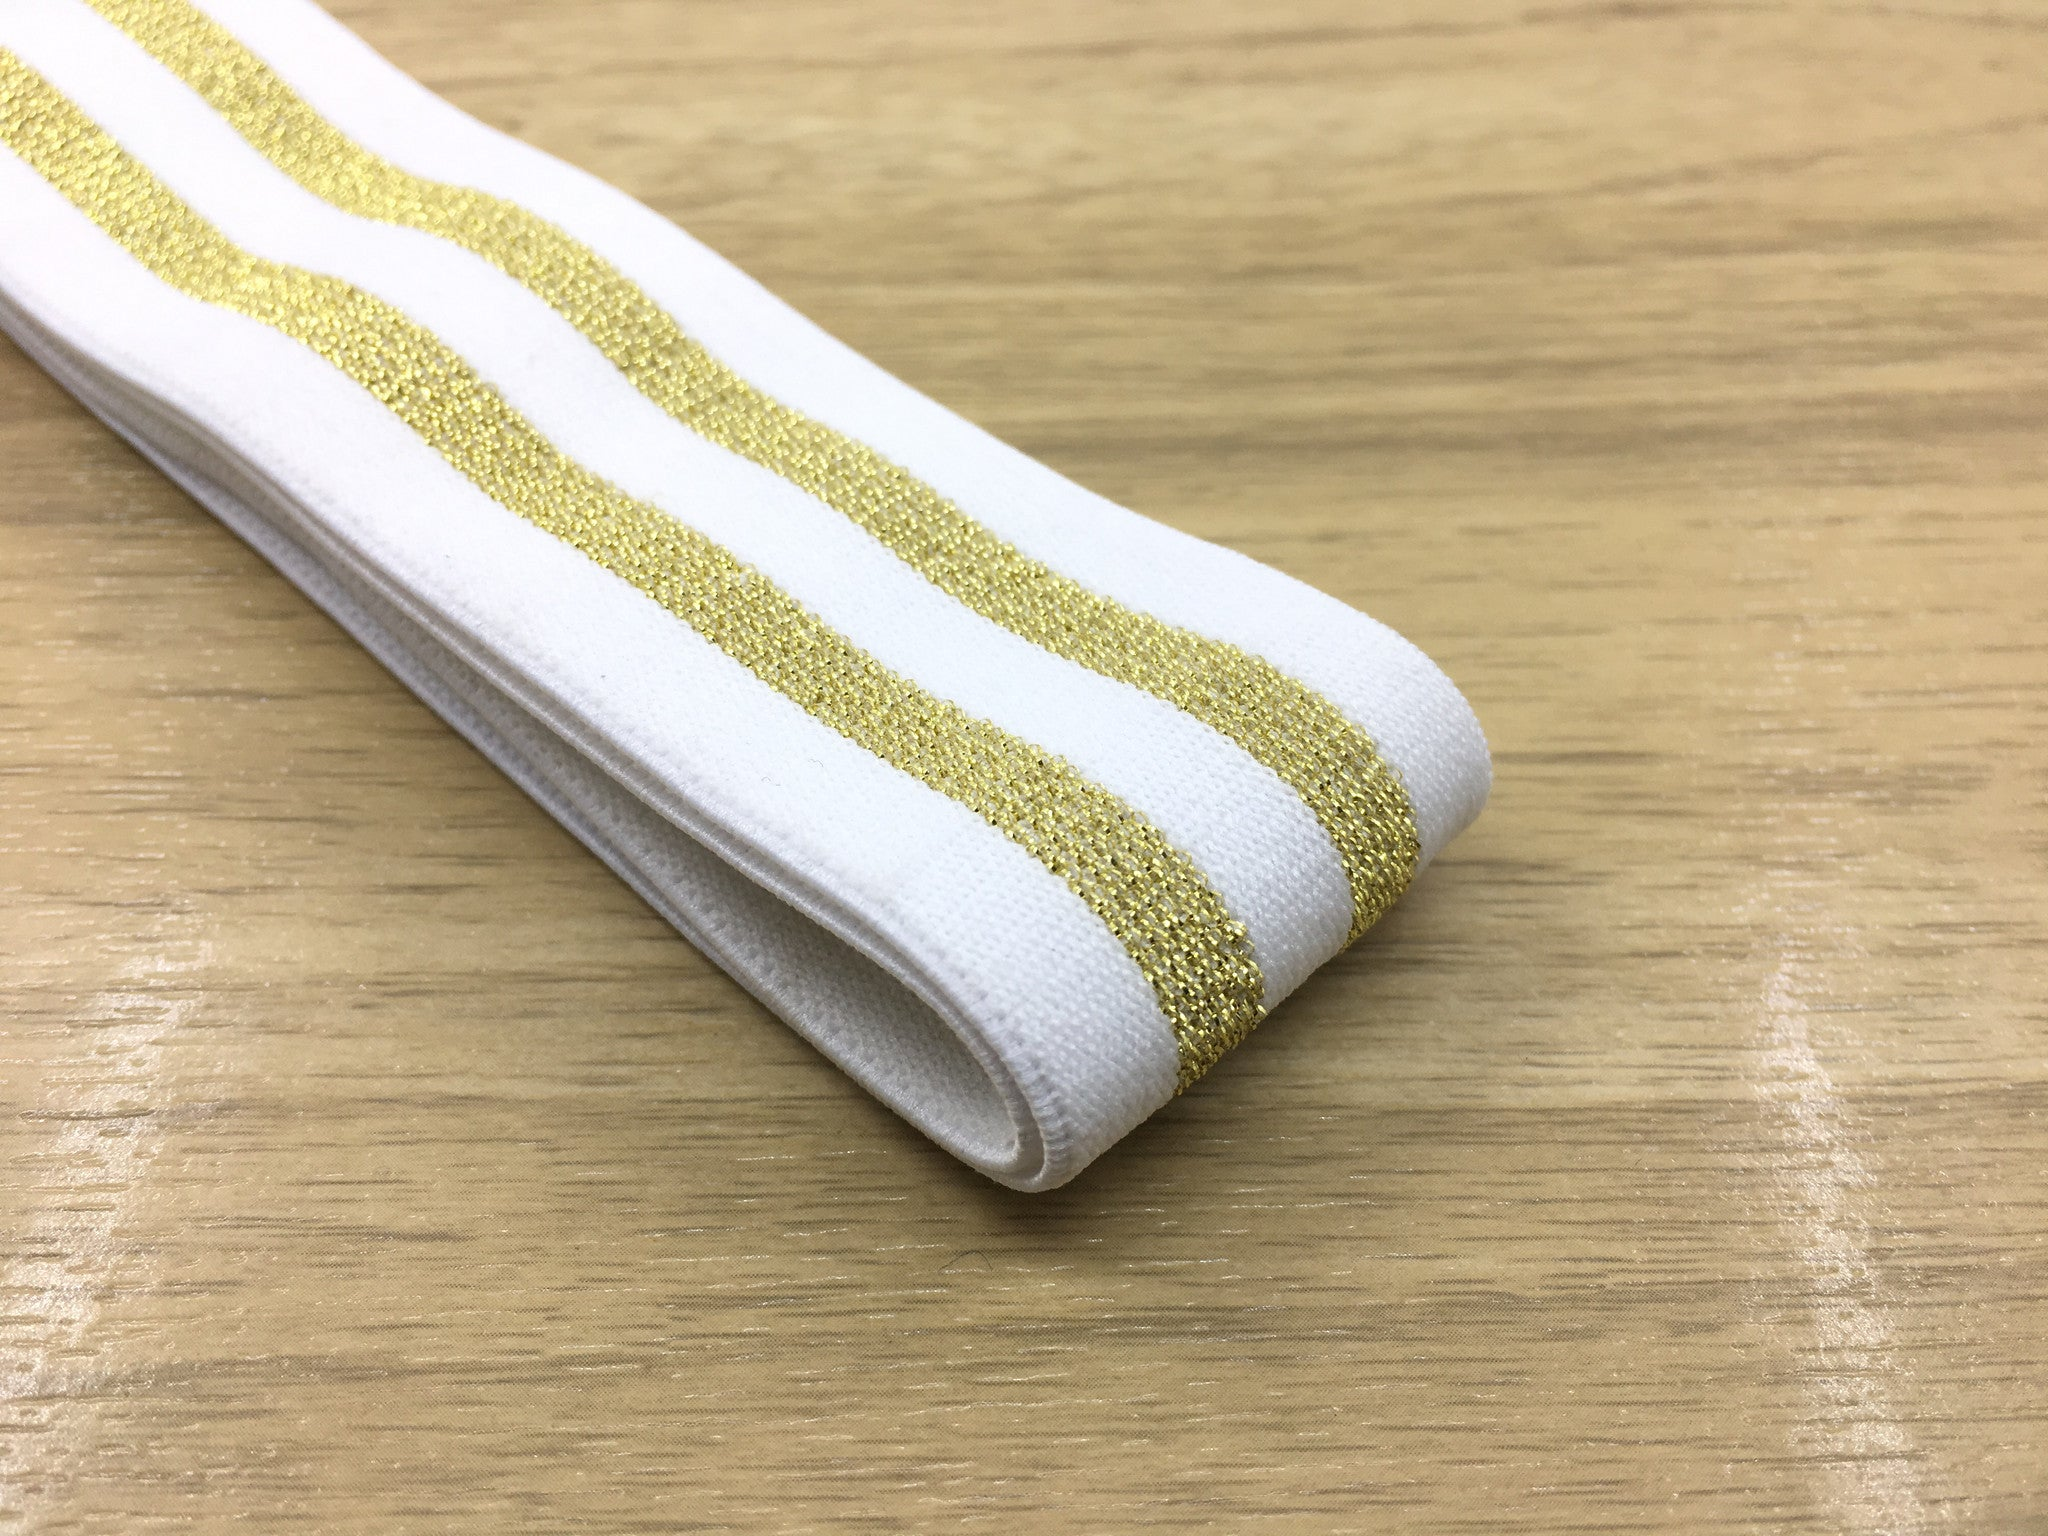 1.5 inch (40mm) Wide Gold Glitter Striped Soft White Elastic Band, Soft Waistband Elastic, Elastic Trim, Sewing Elastic - strapcrafts